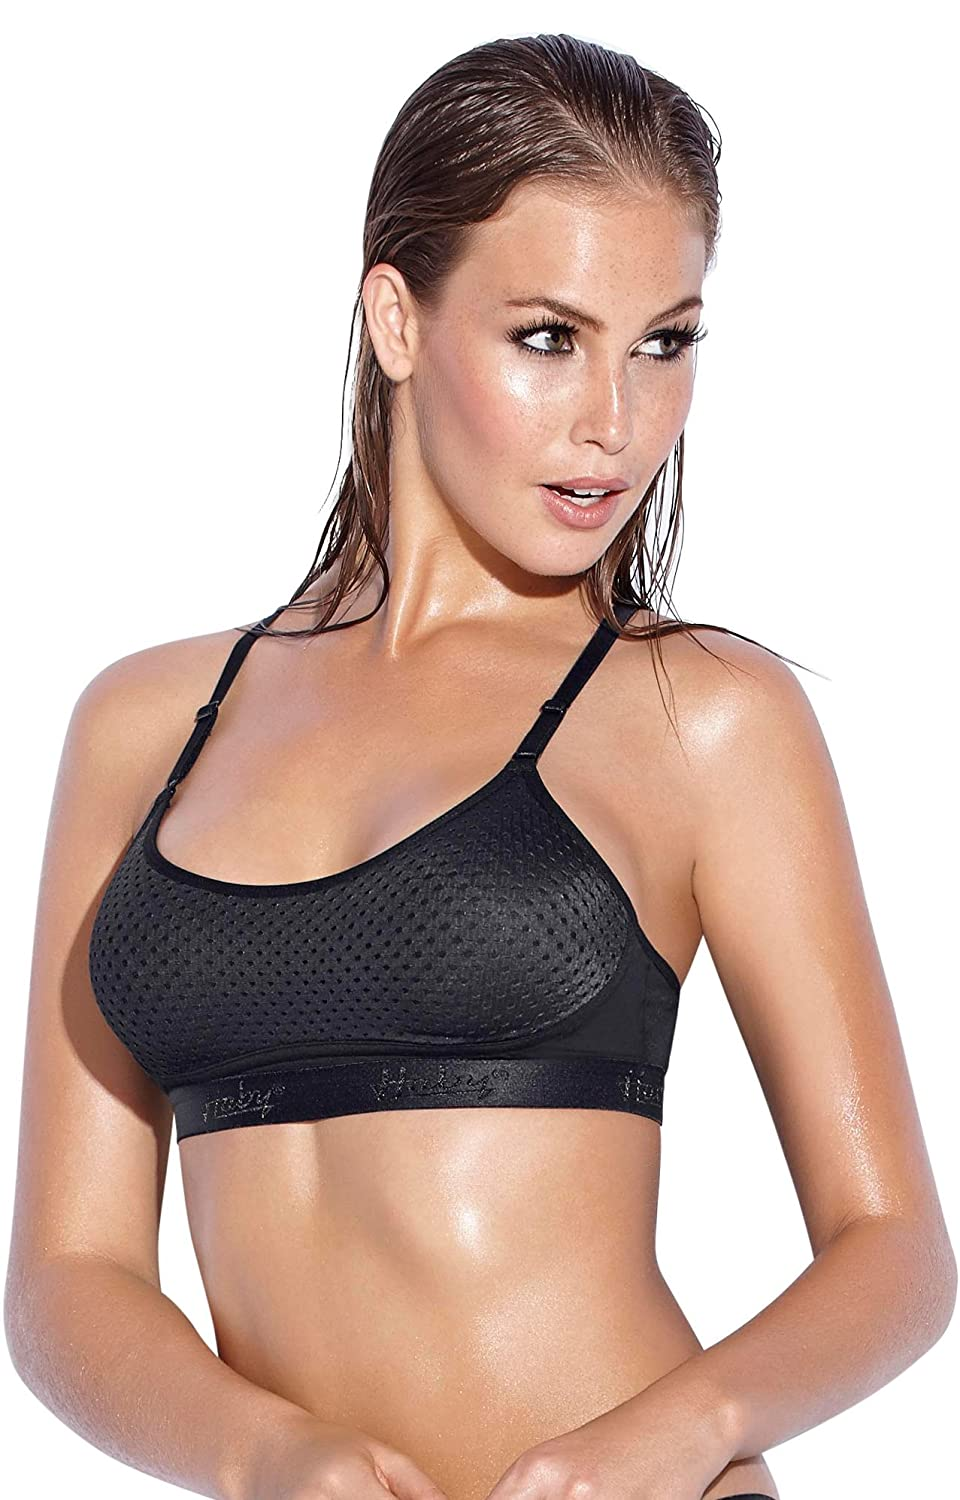 ebfe67214 Haby Women s Wirefree Racerback Sport Bra B Cup Adjustable Straps High  Quality at Amazon Women s Clothing store